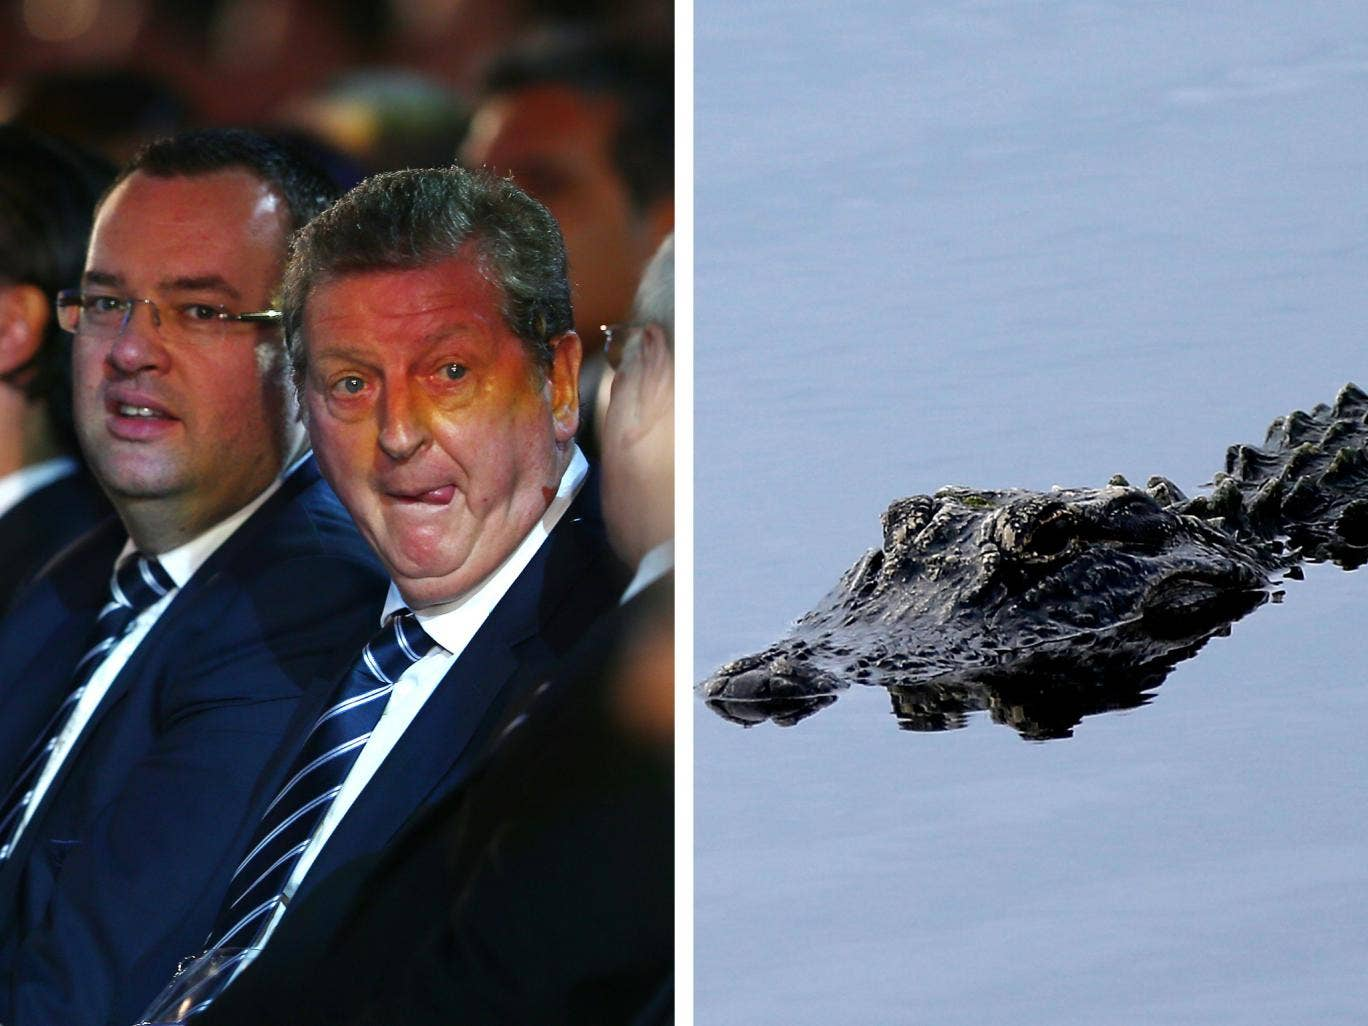 Roy Hodgson's England side will begin the 2014 World Cup in Manaus, where fans have been warned of meeting alligators during the night